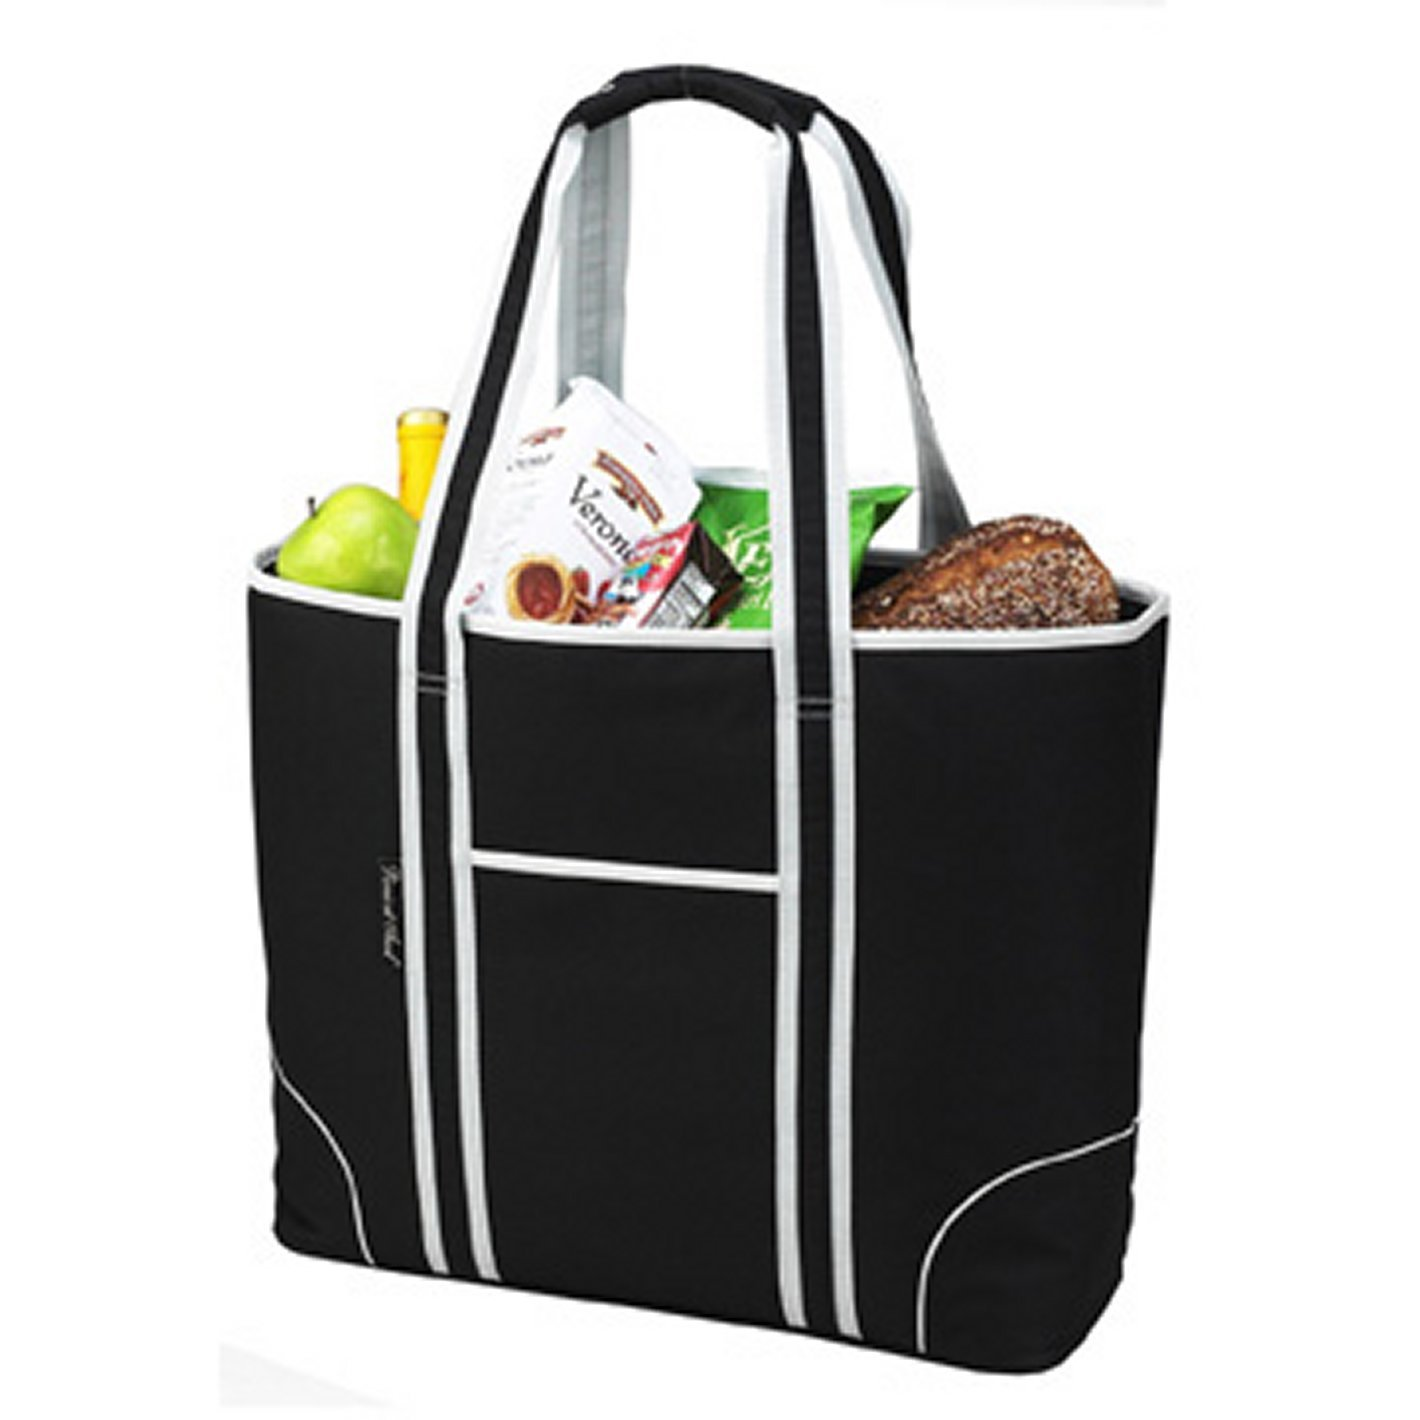 f576d9c2c93 Amazon.com: Picnic at Ascot Extra Large Insulated Cooler Bag - 30 Can Tote  - Black: Reusable Lunch Bags: Kitchen & Dining